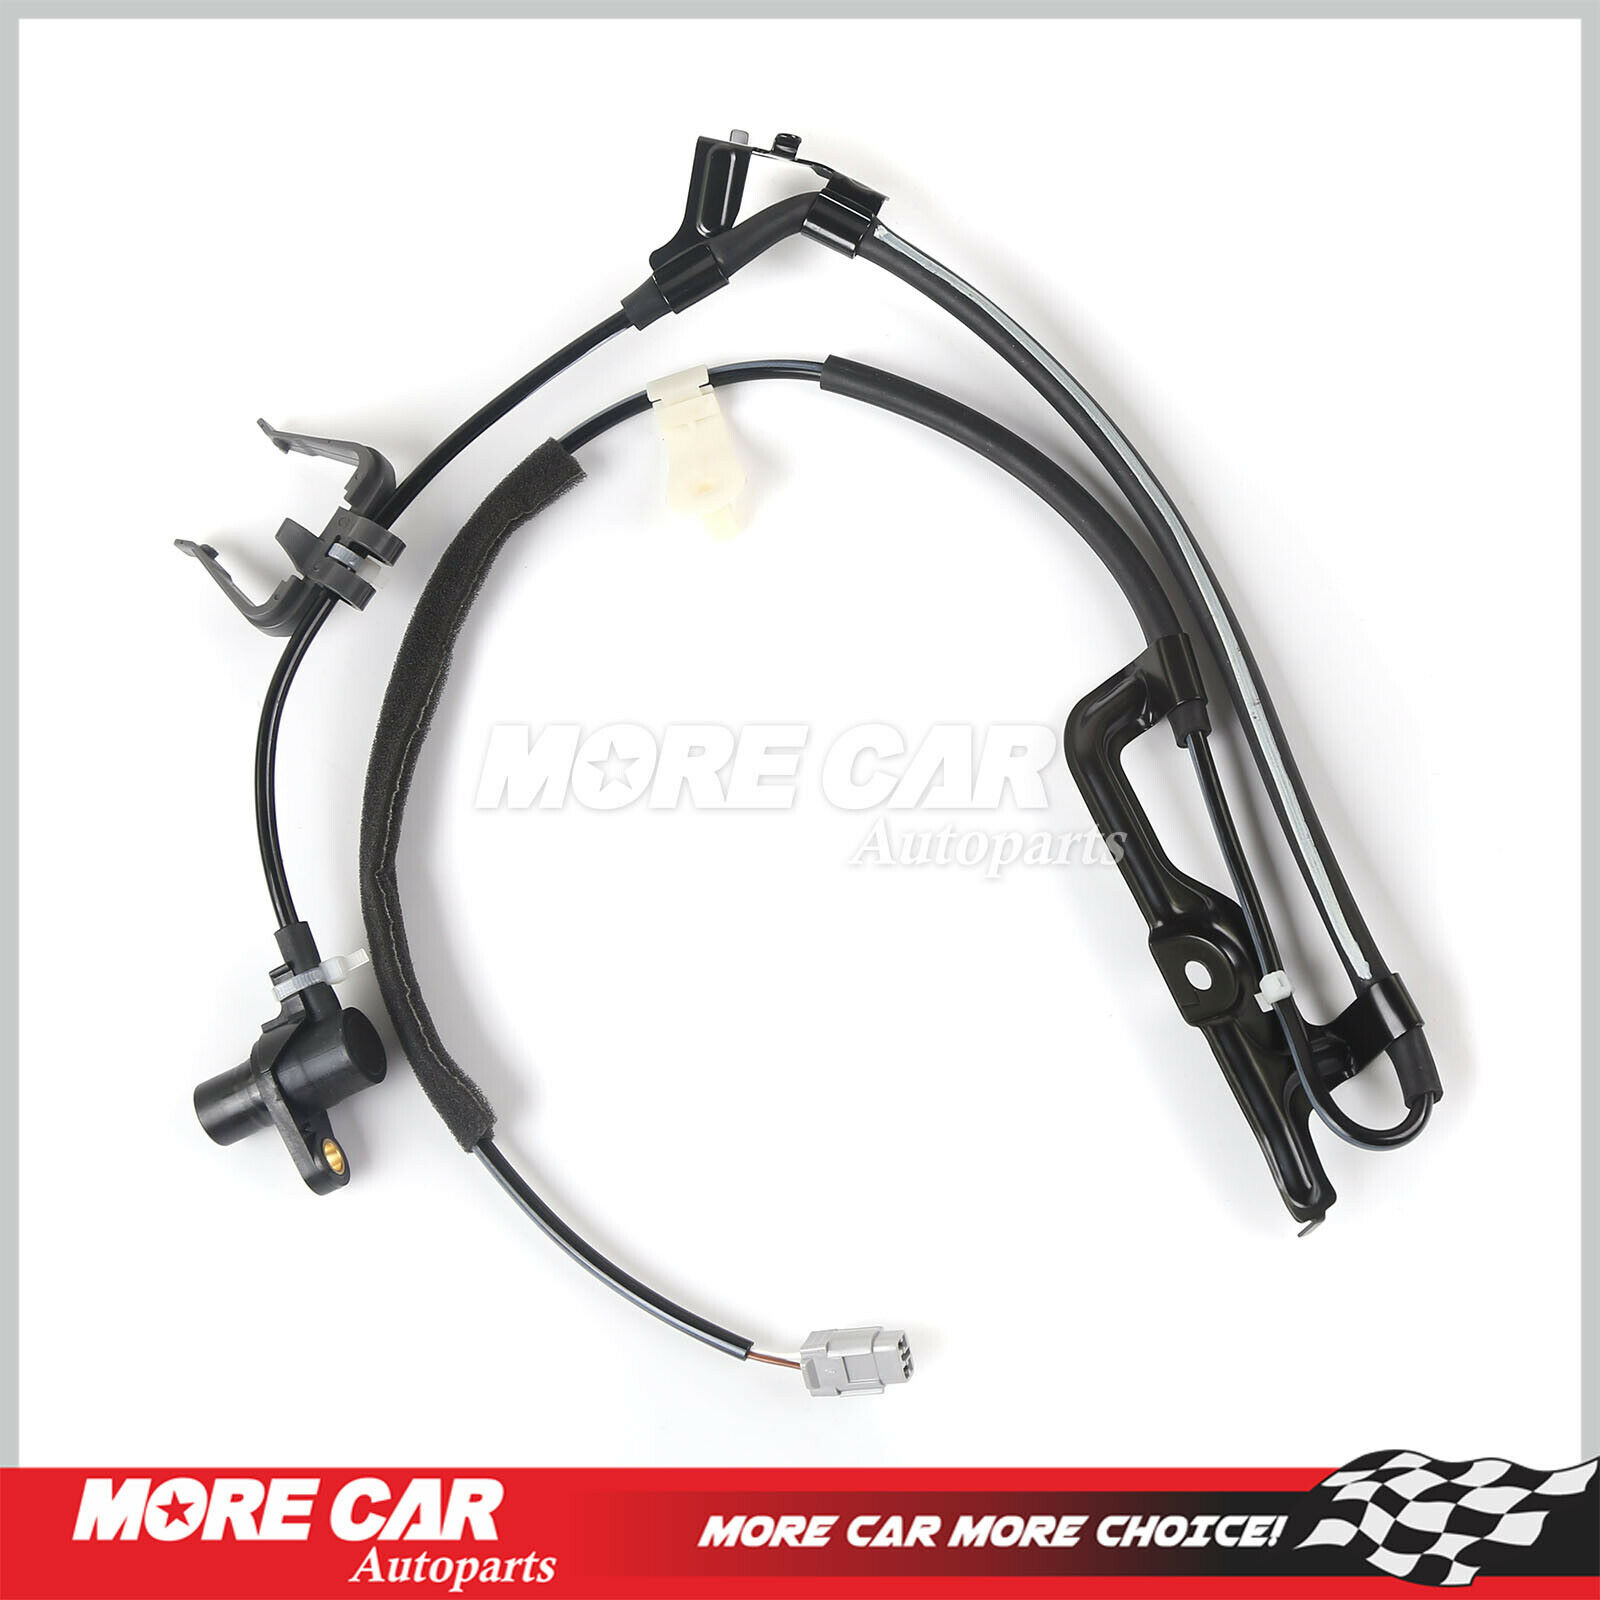 Toyota Sienna 2004-2010 AWD  FWD ABS Speed Sensor Front Right Fits